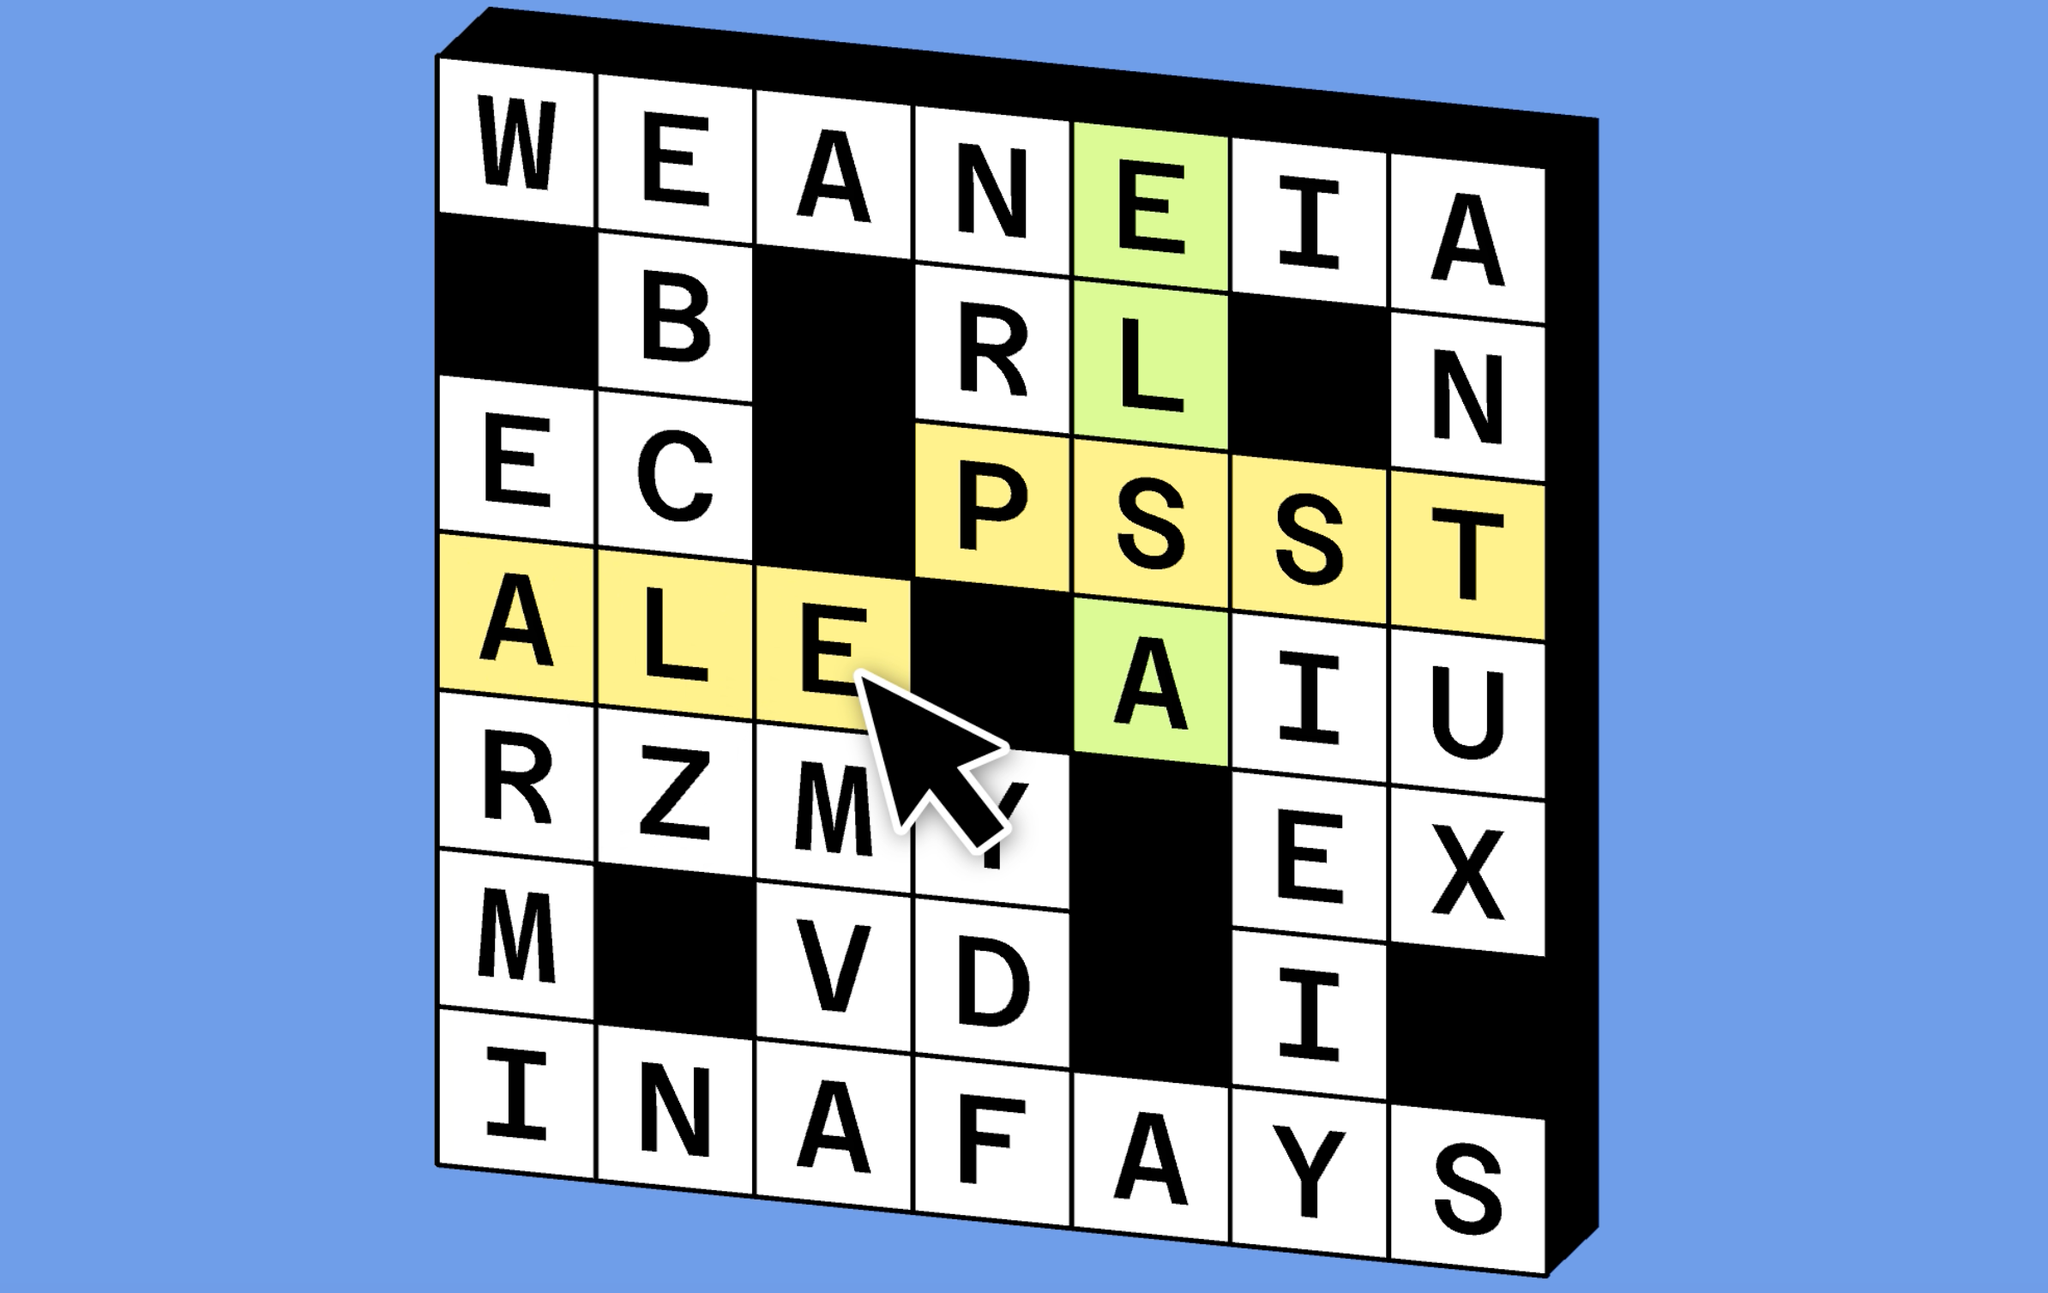 Top 5 Crossword Puzzle To Play In 2022